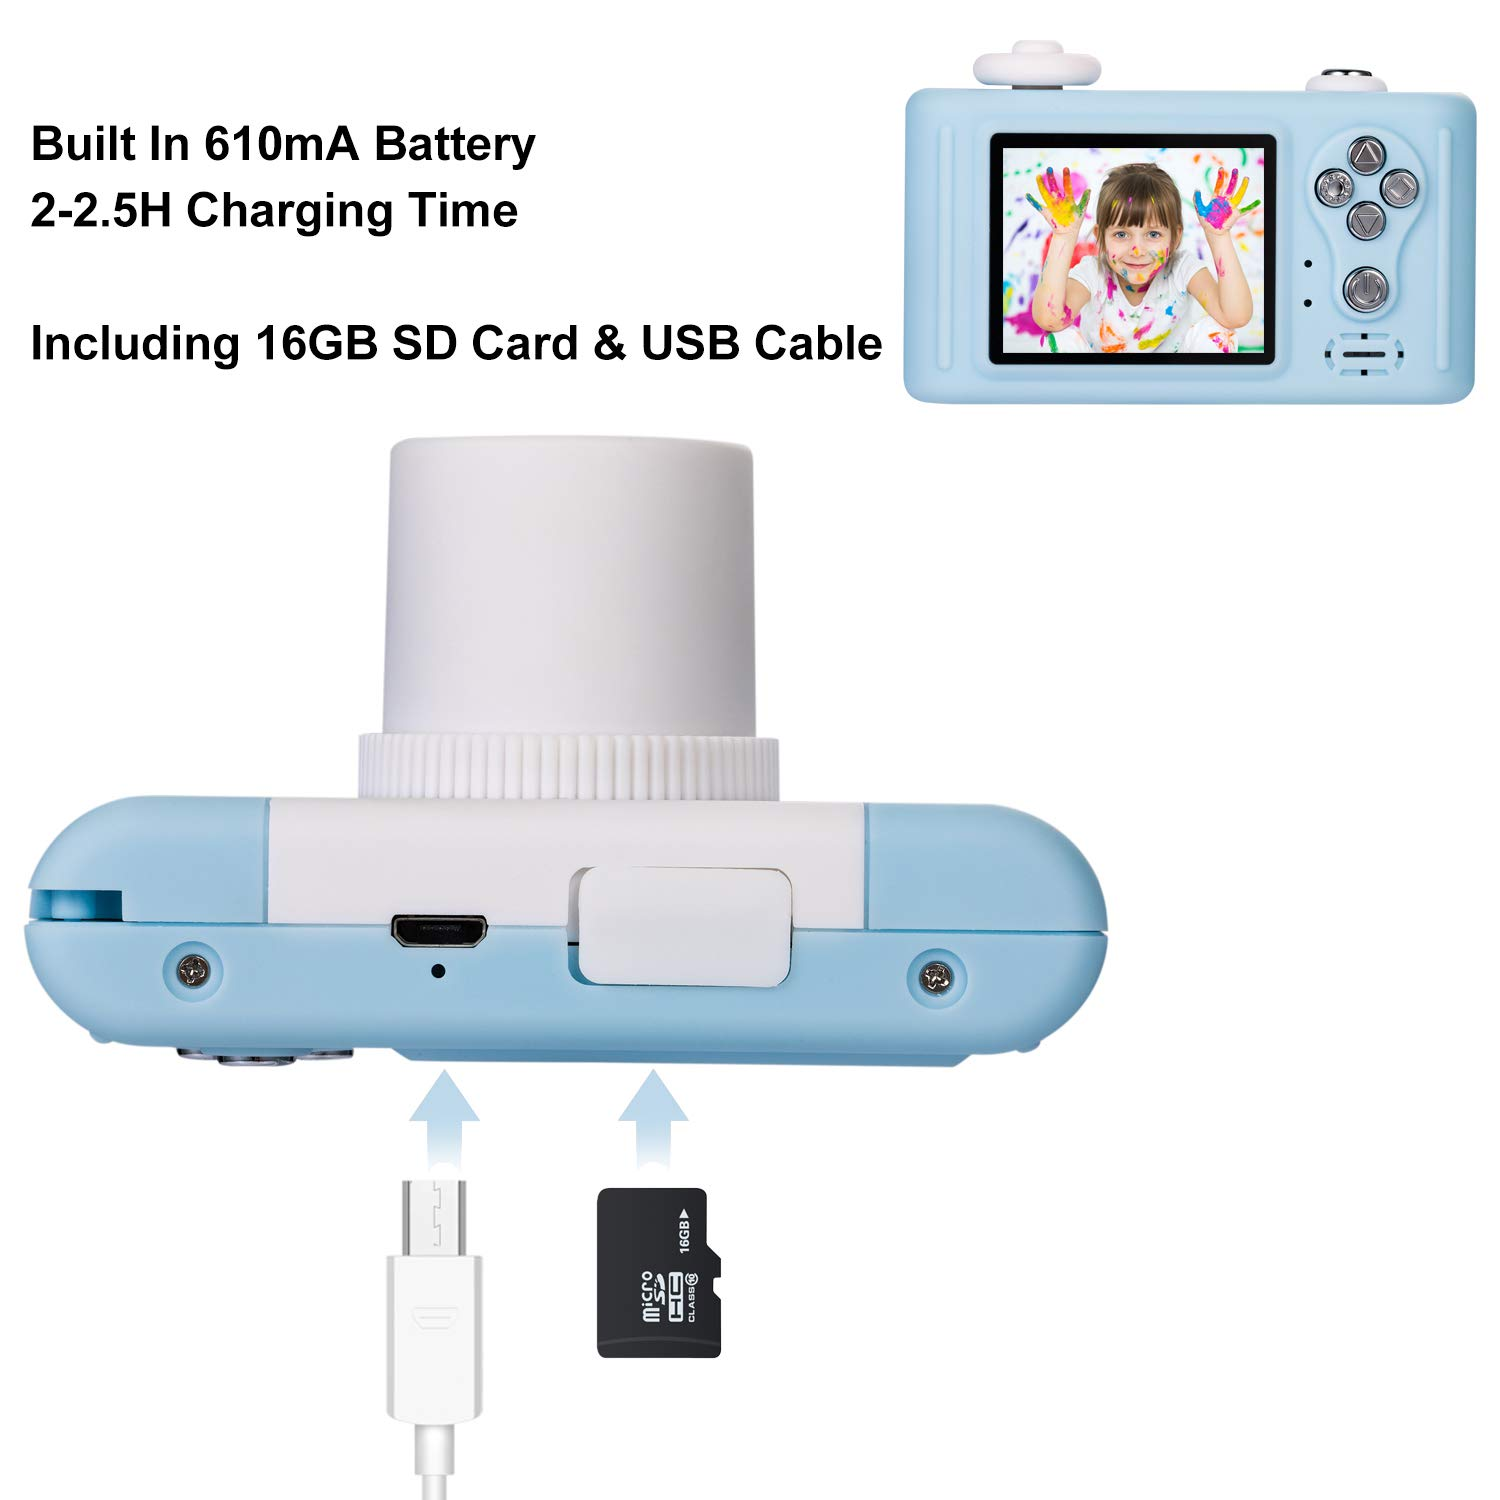 Abdtech Gifts Rabbit Kids Camera, Rechargeable Digital Cameras with Shockproof Soft Cover, Mini Toy Cameras for 5-10 Years Old Girl Boys Including 16GB SD Card, Perfect for Birthday Festival Presents by Abdtech (Image #4)